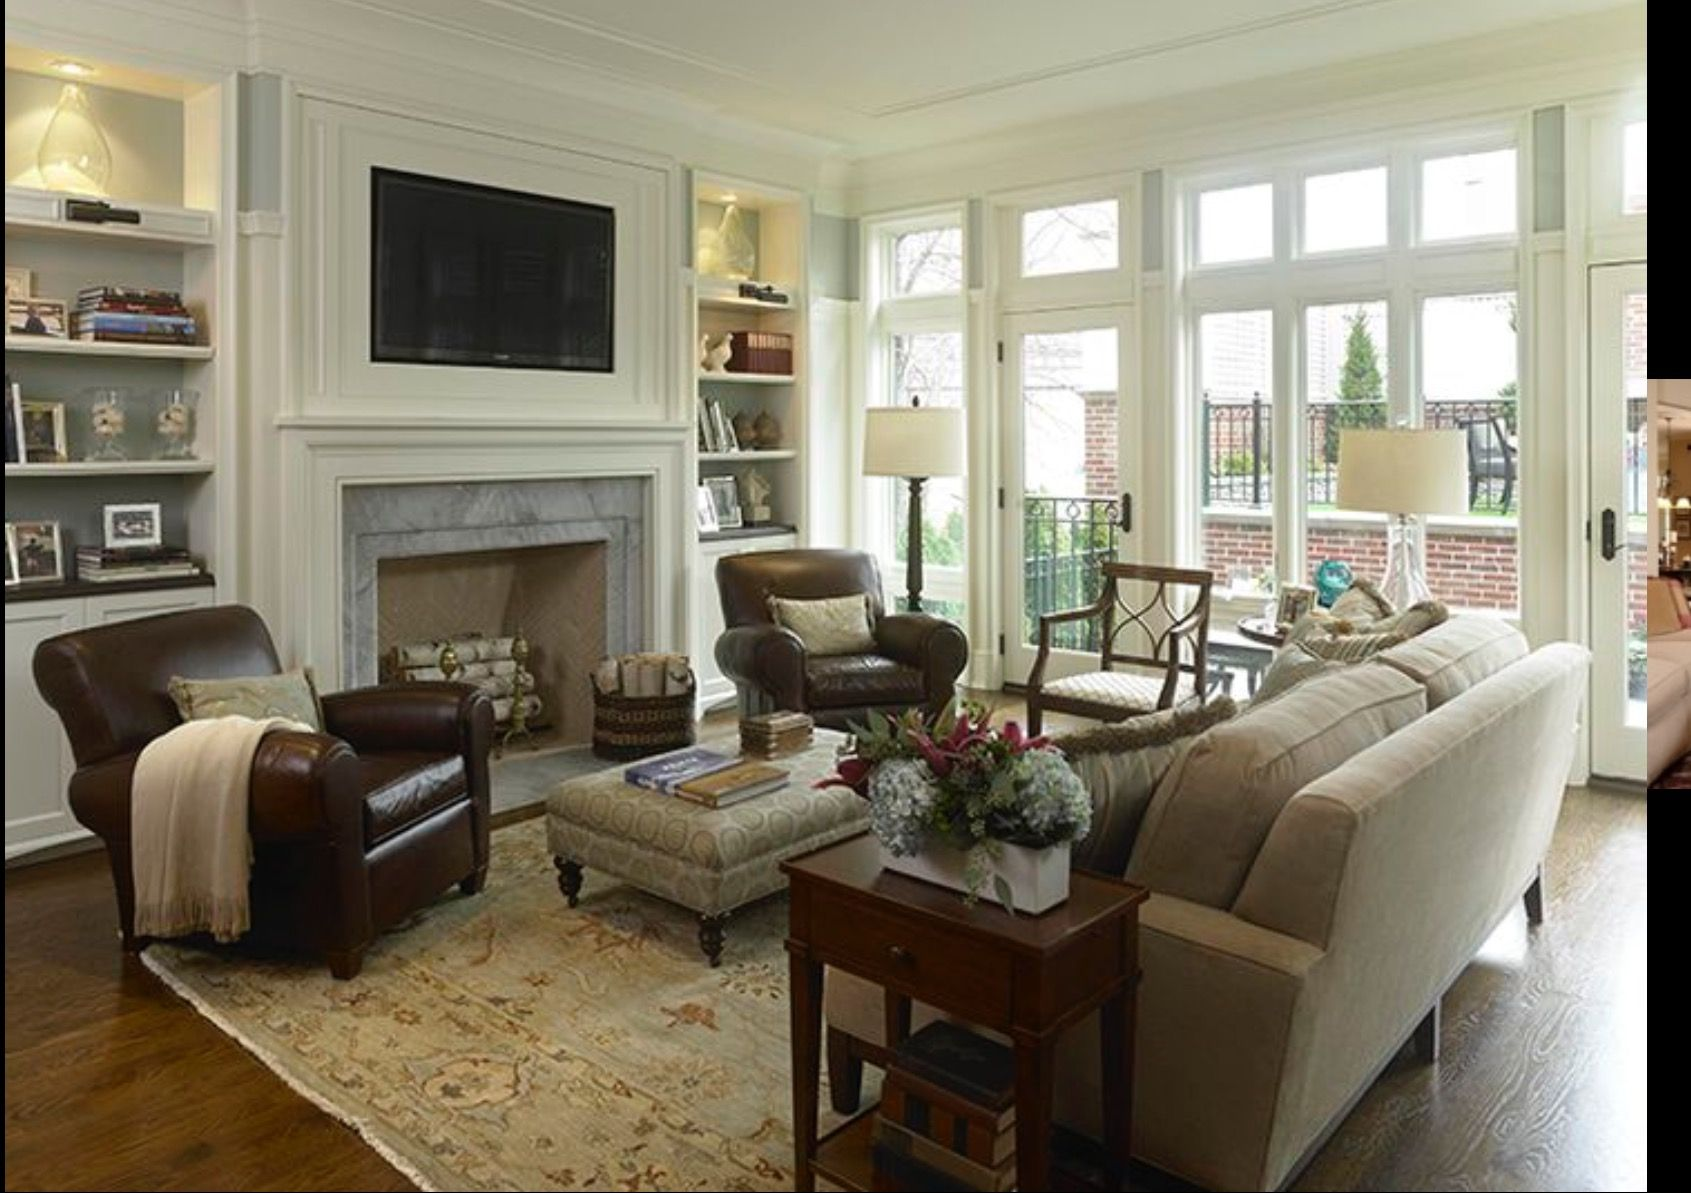 pin by on remodeling living room setup family room 73 Layout In Decoration And Family Room id=62368